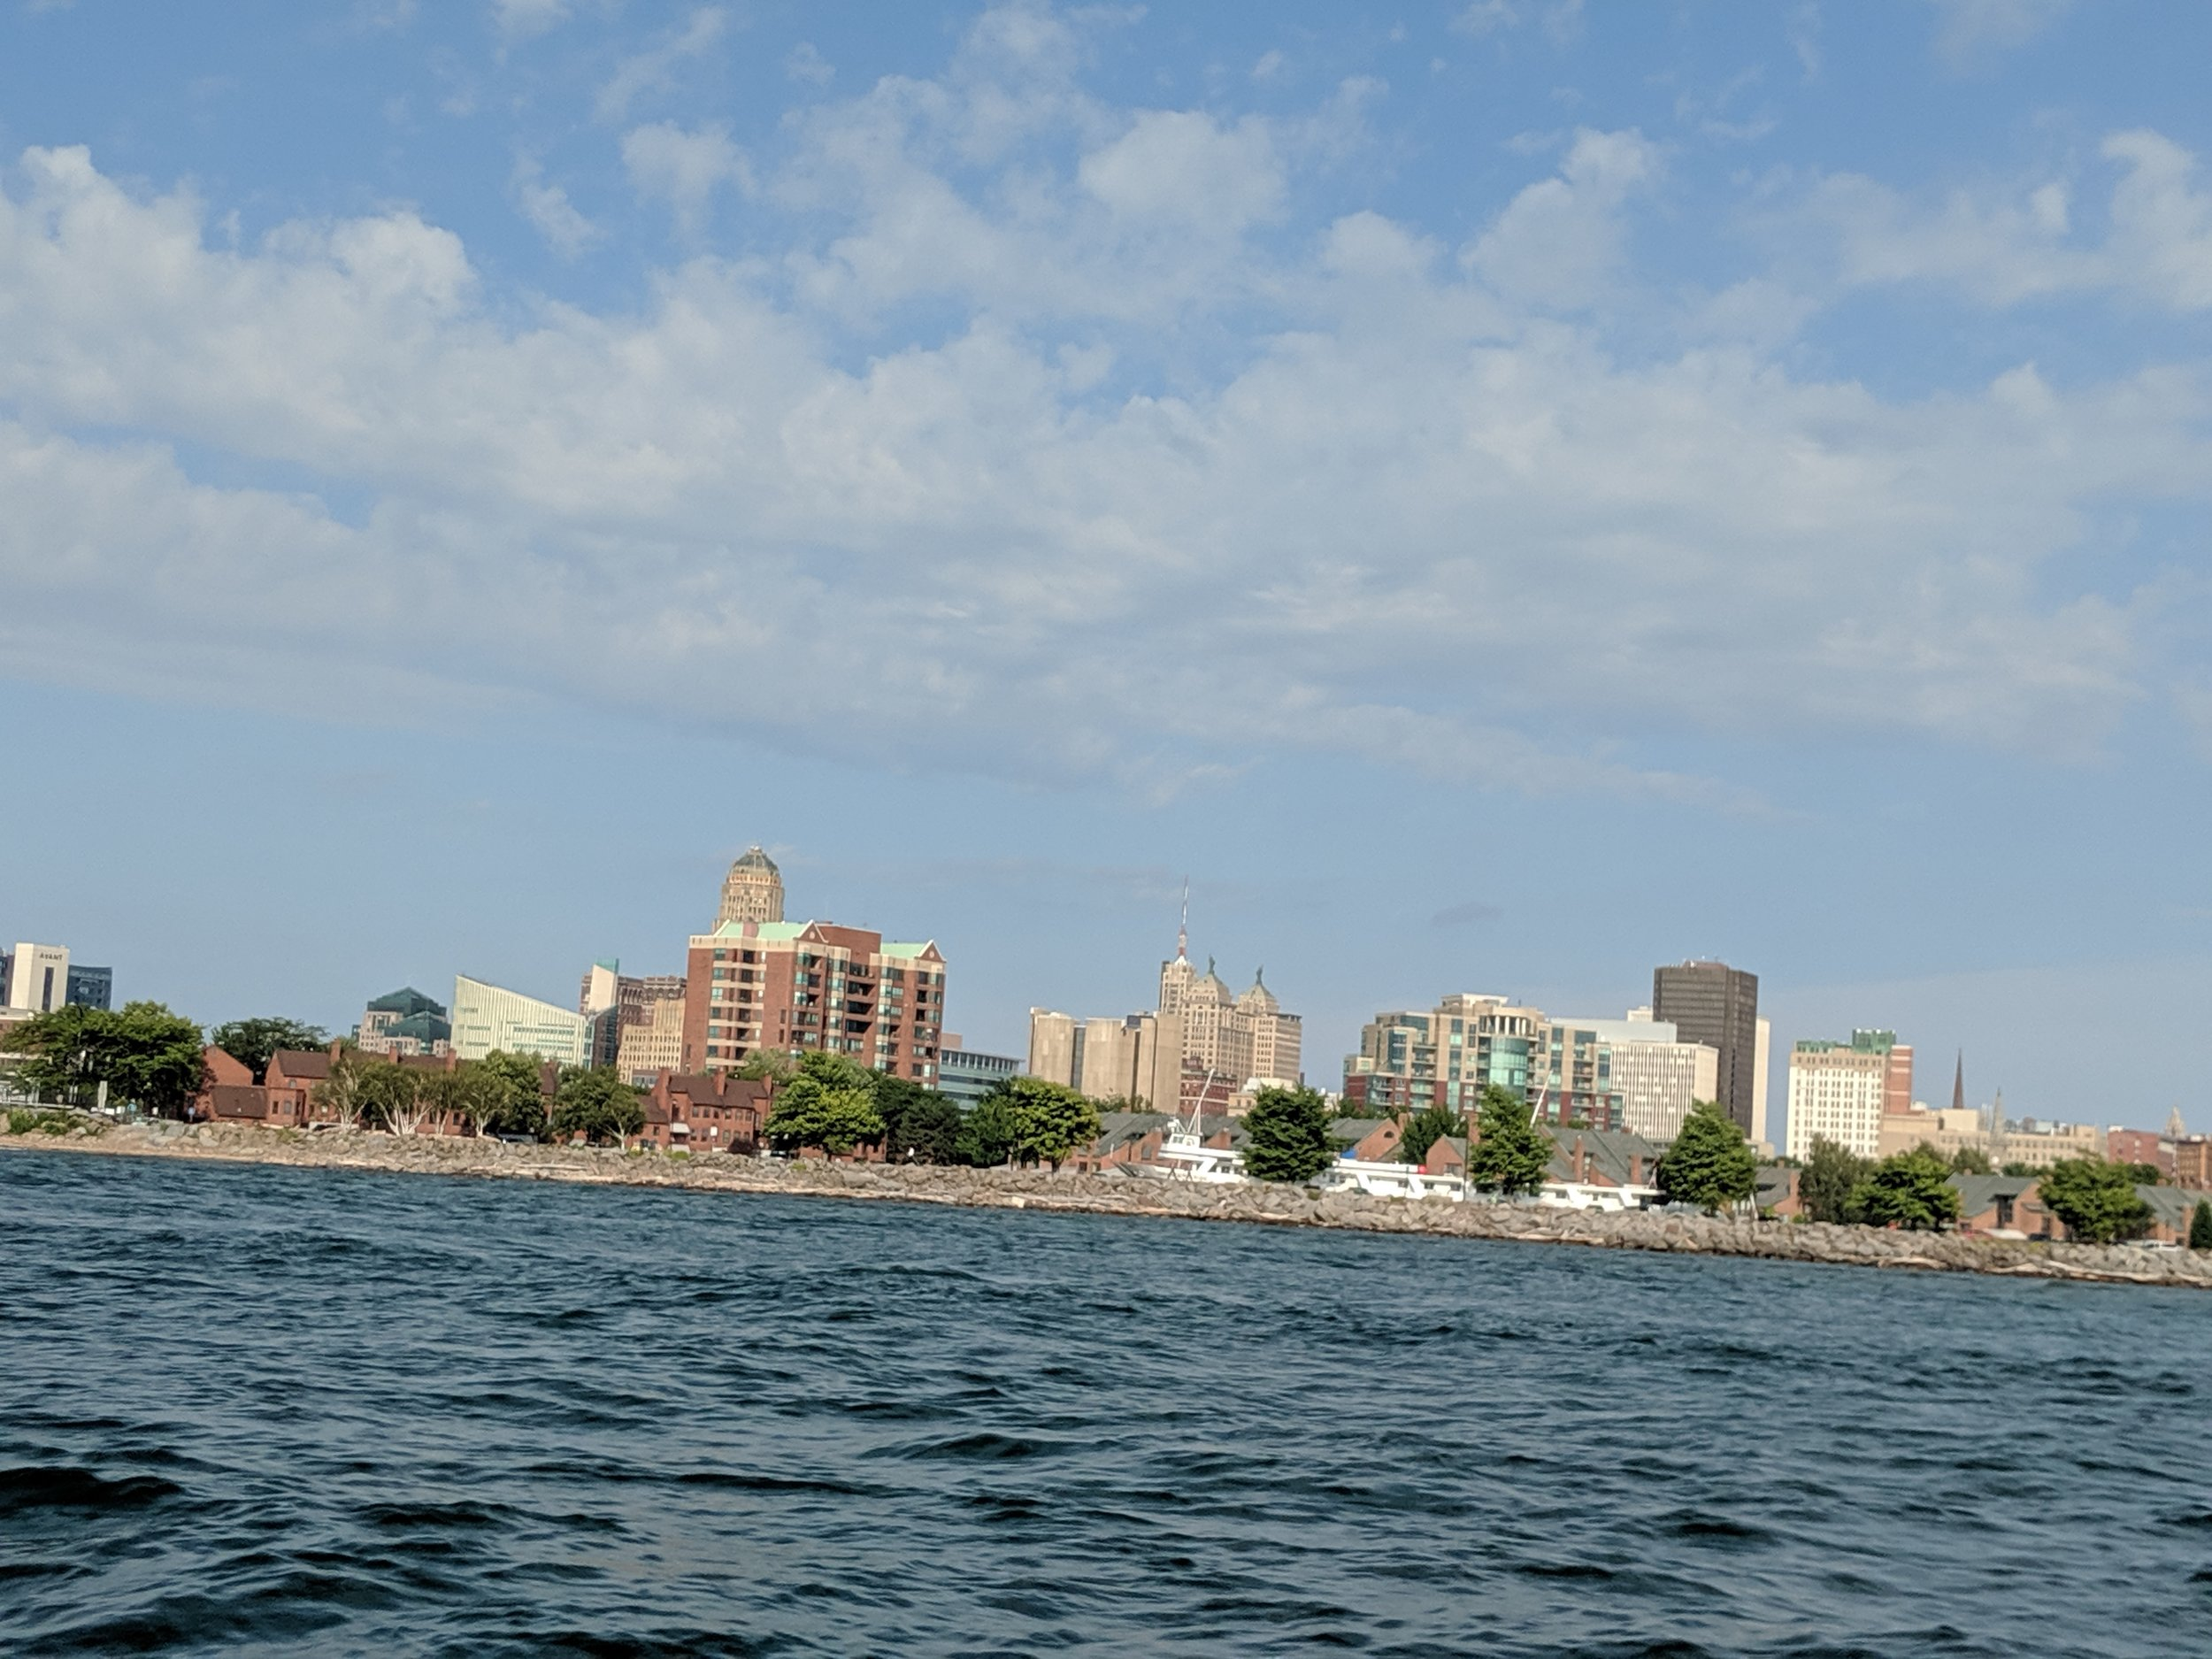 The Buffalo skyline as we sped by in a friends boat.